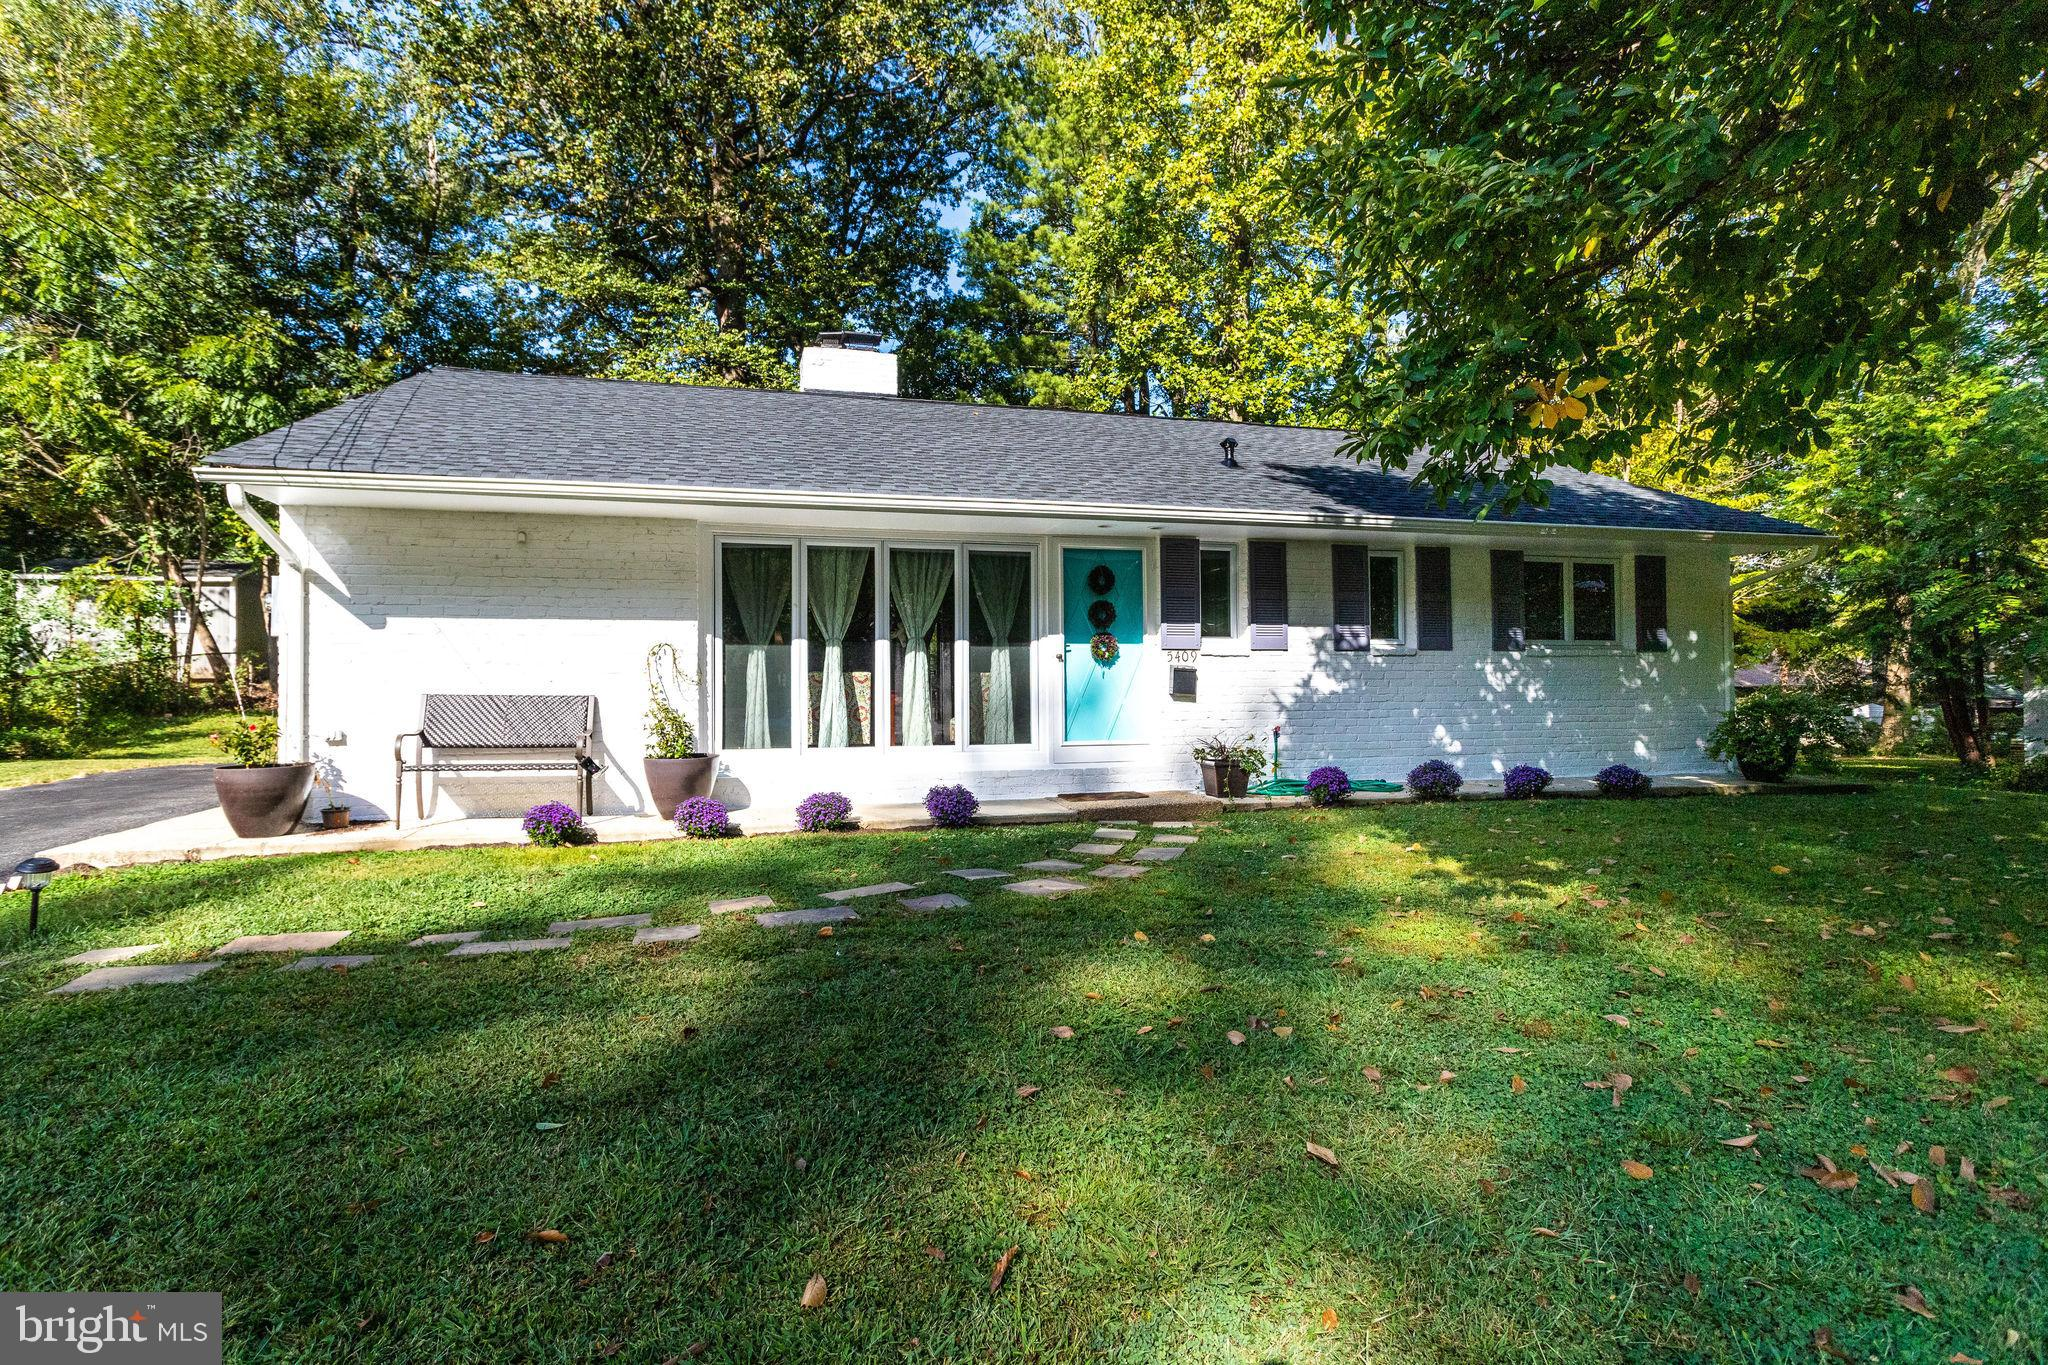 Charming, well maintained, one level gem in North Springfield, 3 Bedrooms 1 and Half Bath, and an addition that could be used as a 4th bedroom, office/Den.  Nicely updated! Fresh paint, gleaming hardwoods, Renov kitchen with granite, SS appliances, Recessed lights, New Roof Aug 2019 w/architectural shingles and New gutters, Separate Laundry Room with full washer and dryer, Fire place. Shed, Patio, Large driveway, Very nice size backyard, Perfectly located in a beautiful and quiet area conveniently close to all commuter routes - 95, 395, 495 , Braddock with close access to HOV lanes.